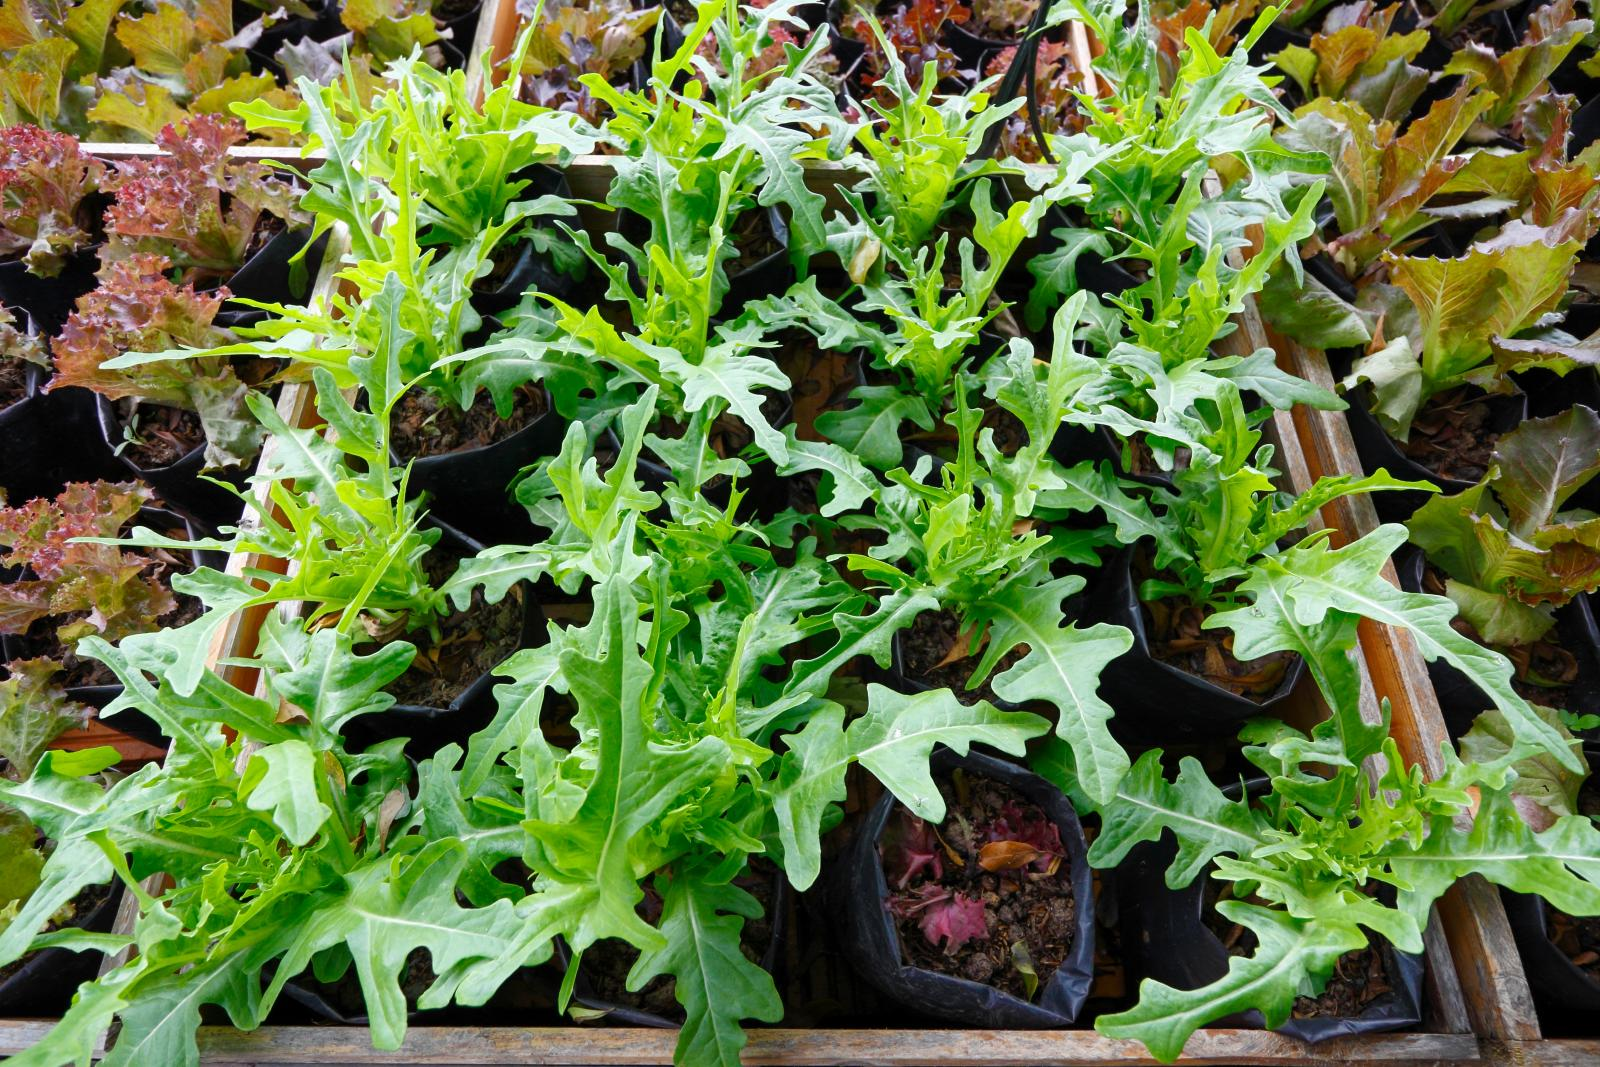 Growing rocket and mixed salads in containers